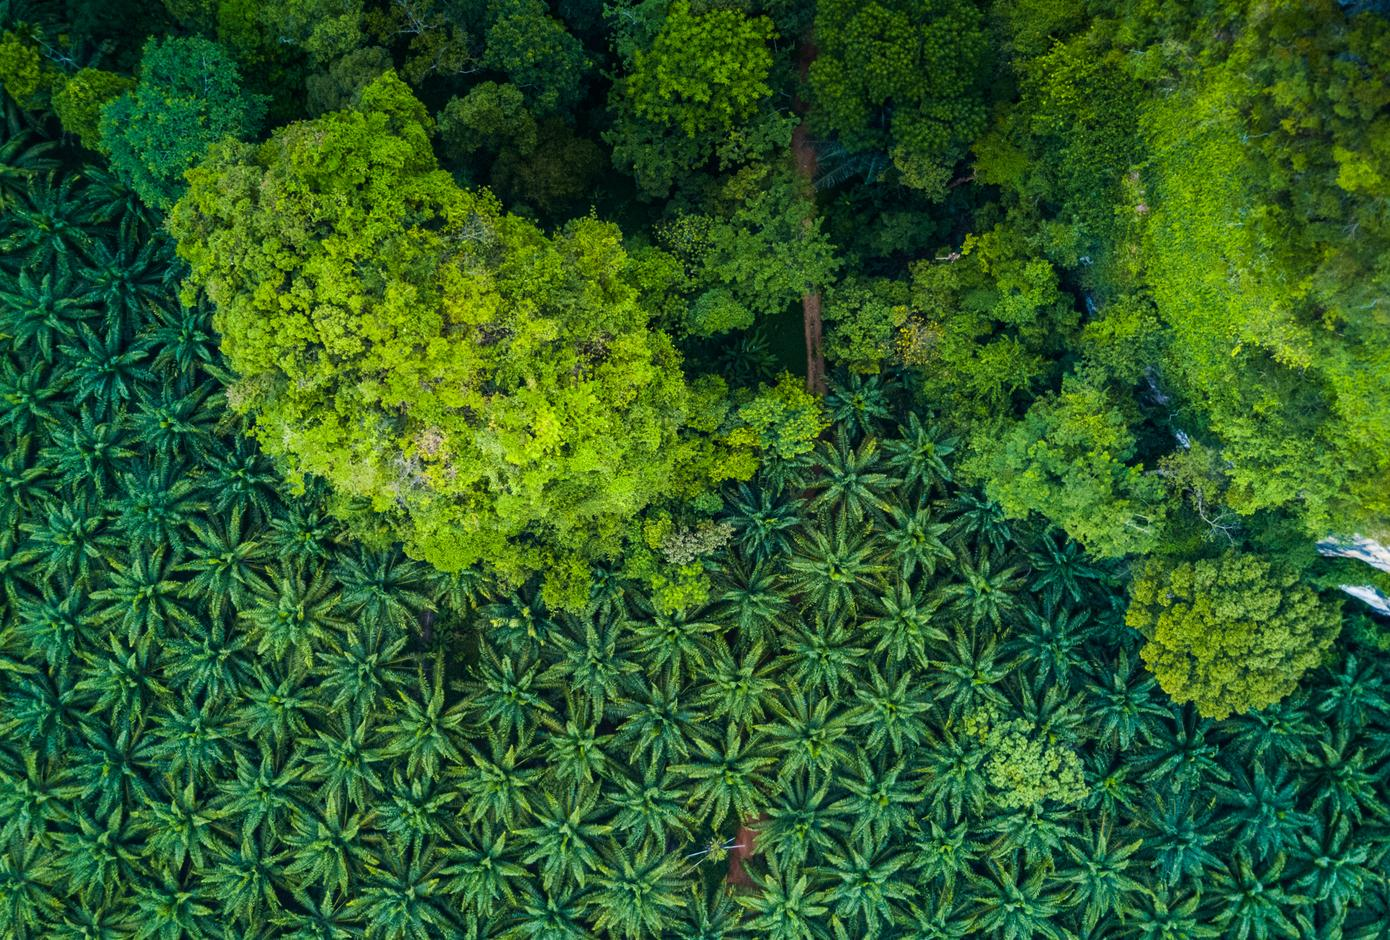 Aerial view of a palm forest.